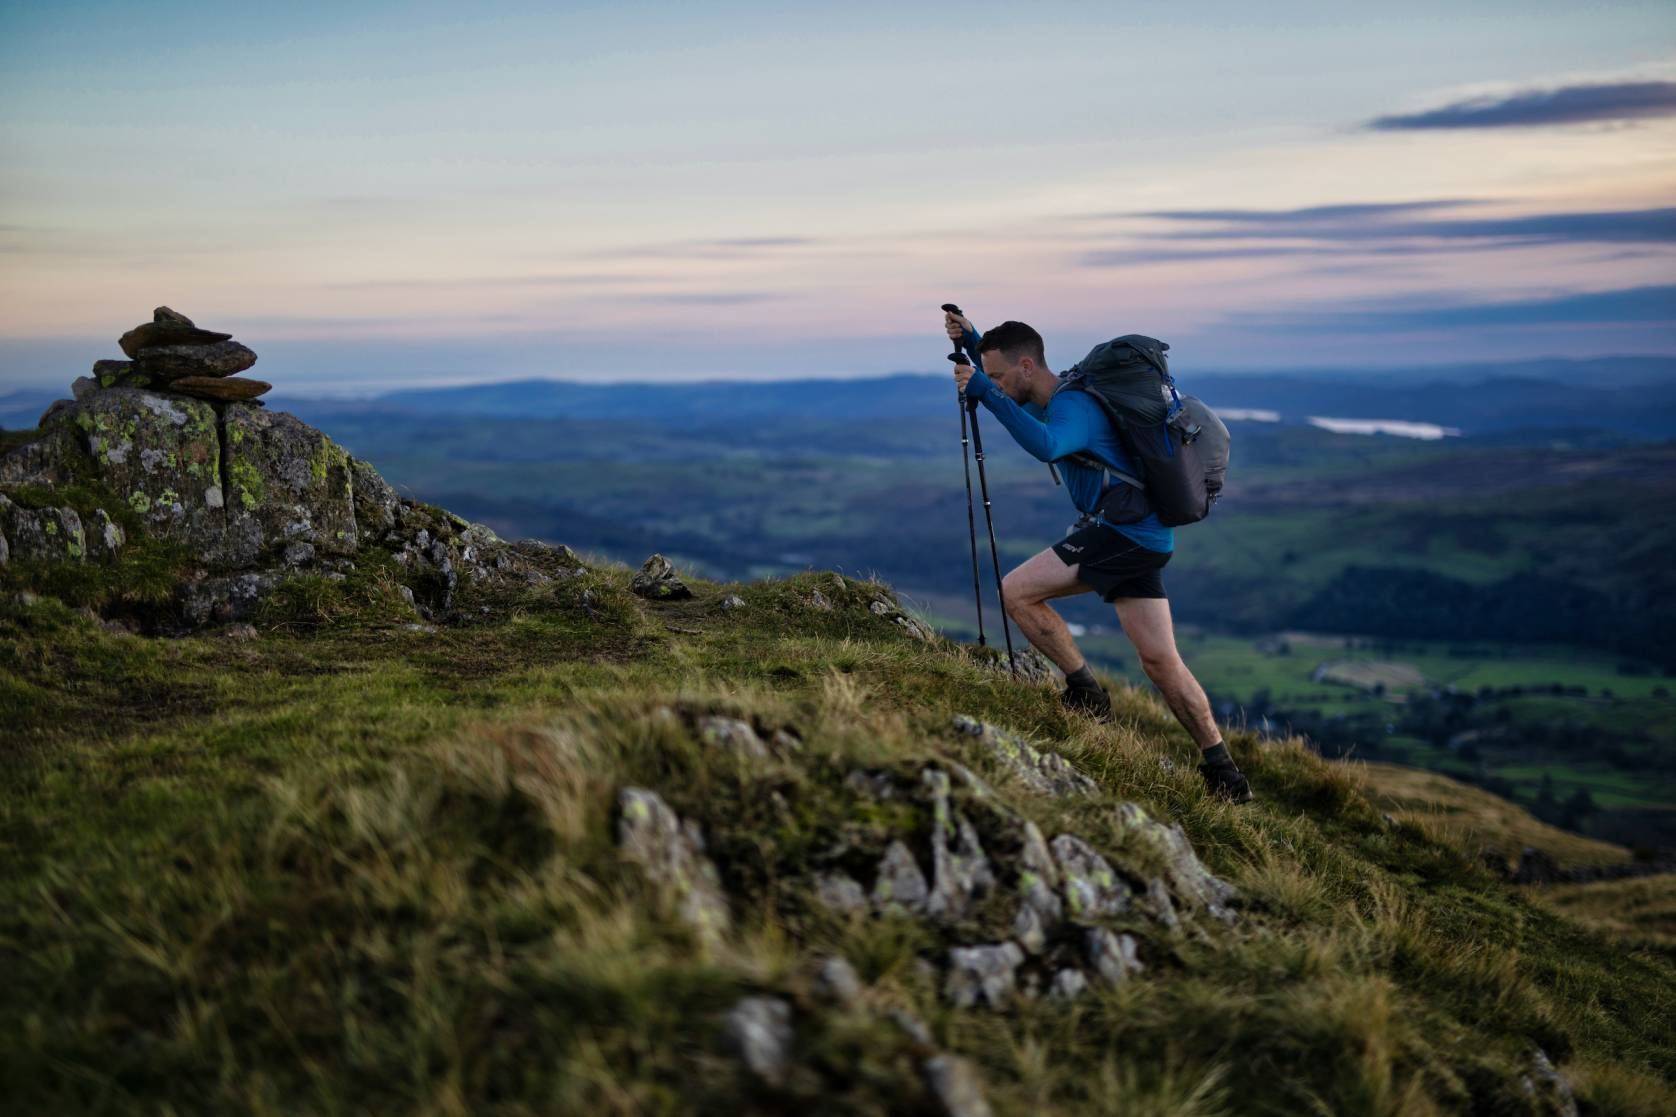 James Forrest hiking the wainwrights